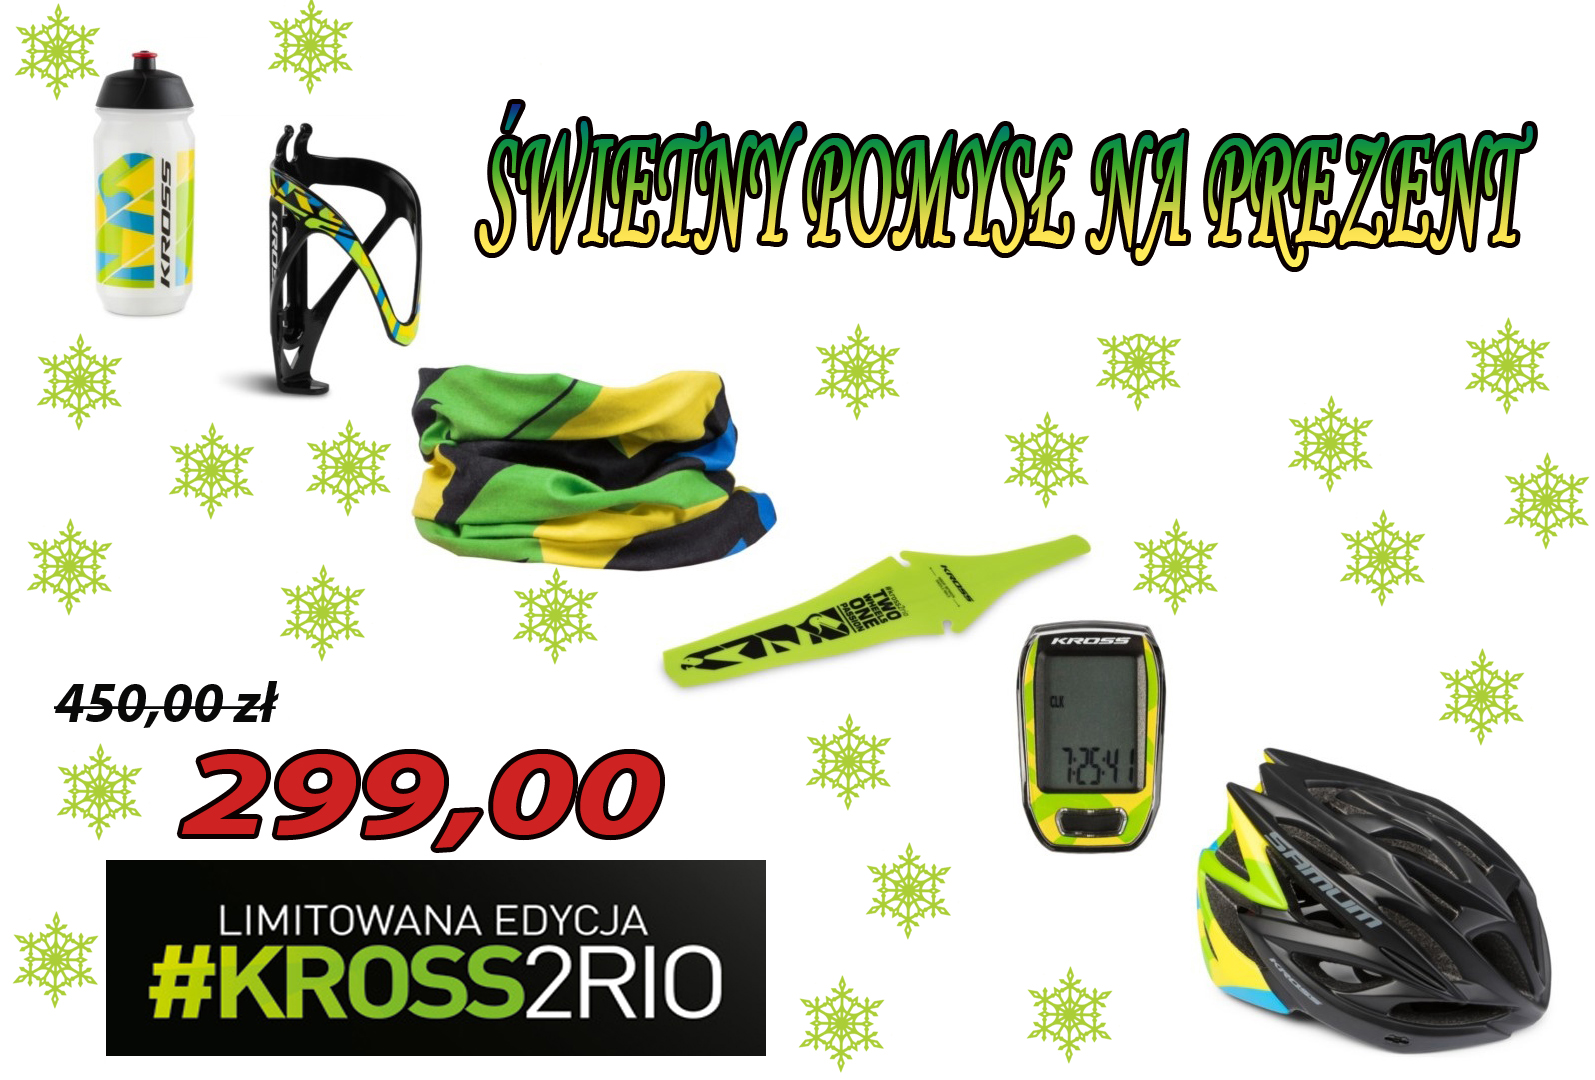 KROSS RIO LIMITED EDITION